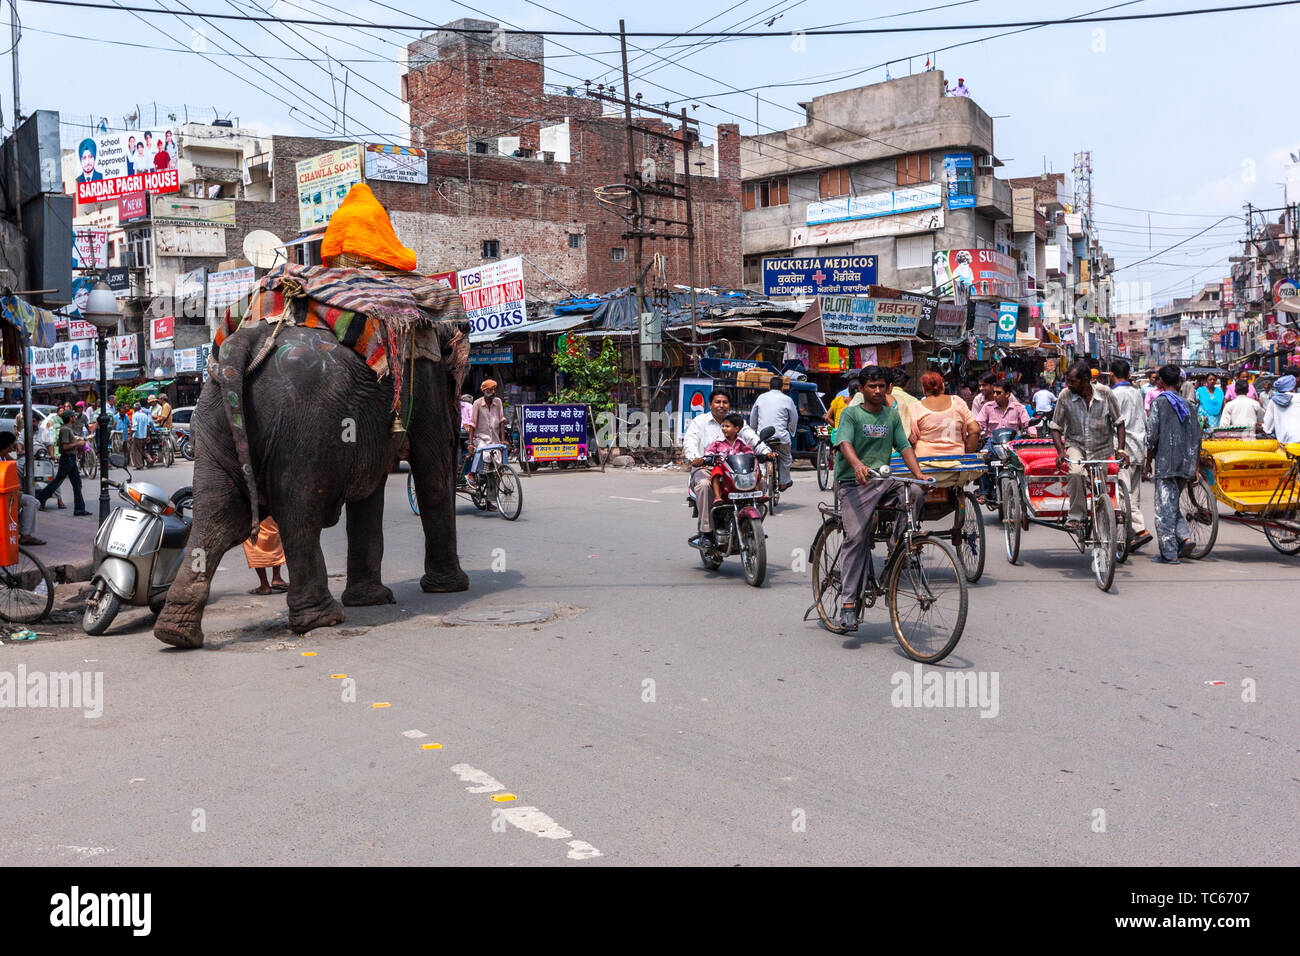 Elephant crossing a busy road in Amritsar, Punjab, India Stock Photo